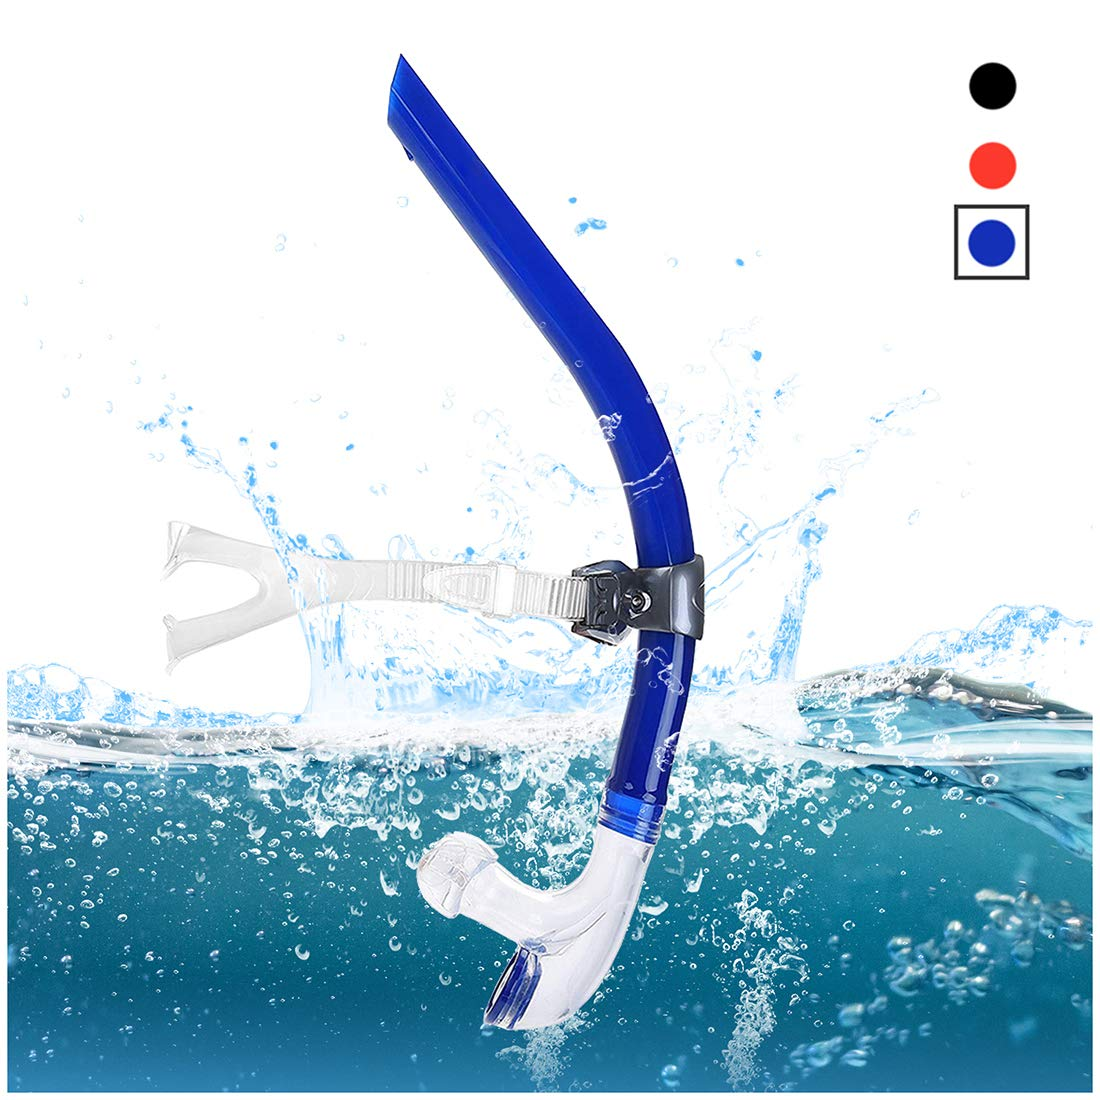 TangyueW Swim Snorkel, One-Way Purge Valve Swimmers Snorkel for Lap Swimming Training Snorkeling, Front Mounted Training Gear with Comfortable Silicone Mouthpiece (Blue)